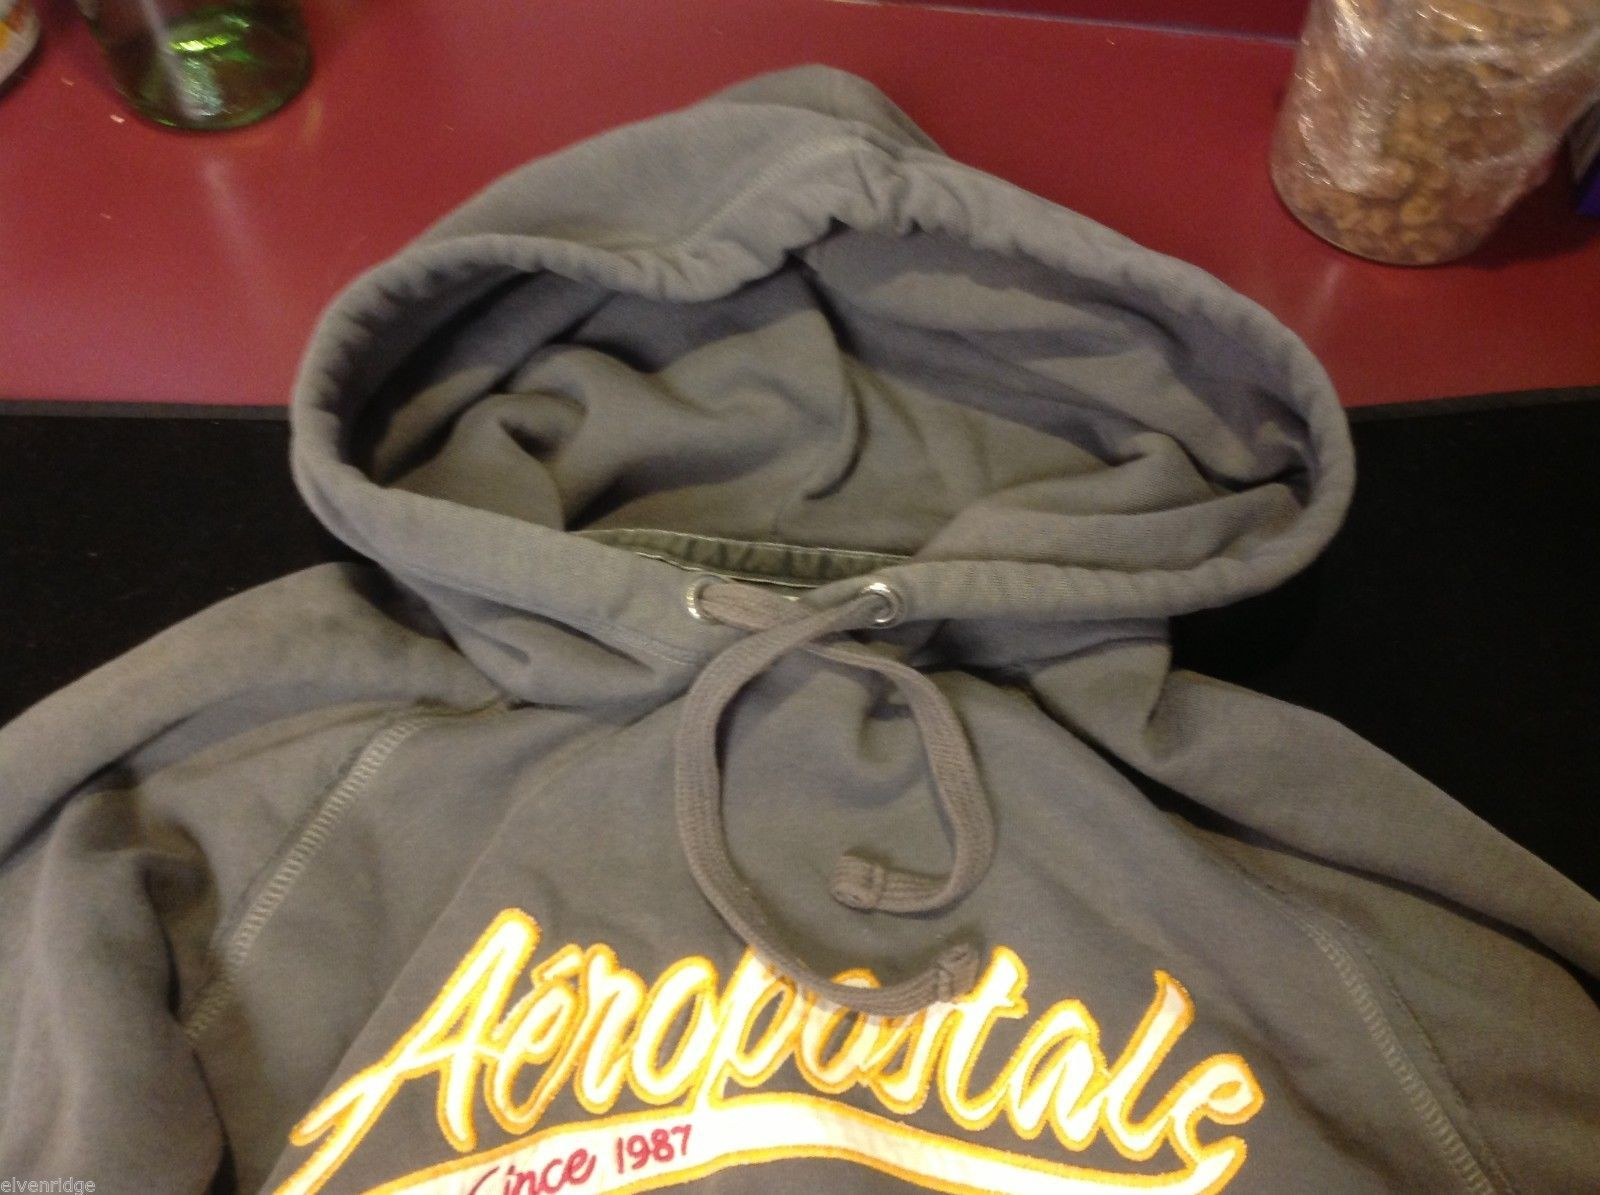 Aéropostale hoodie in large gray